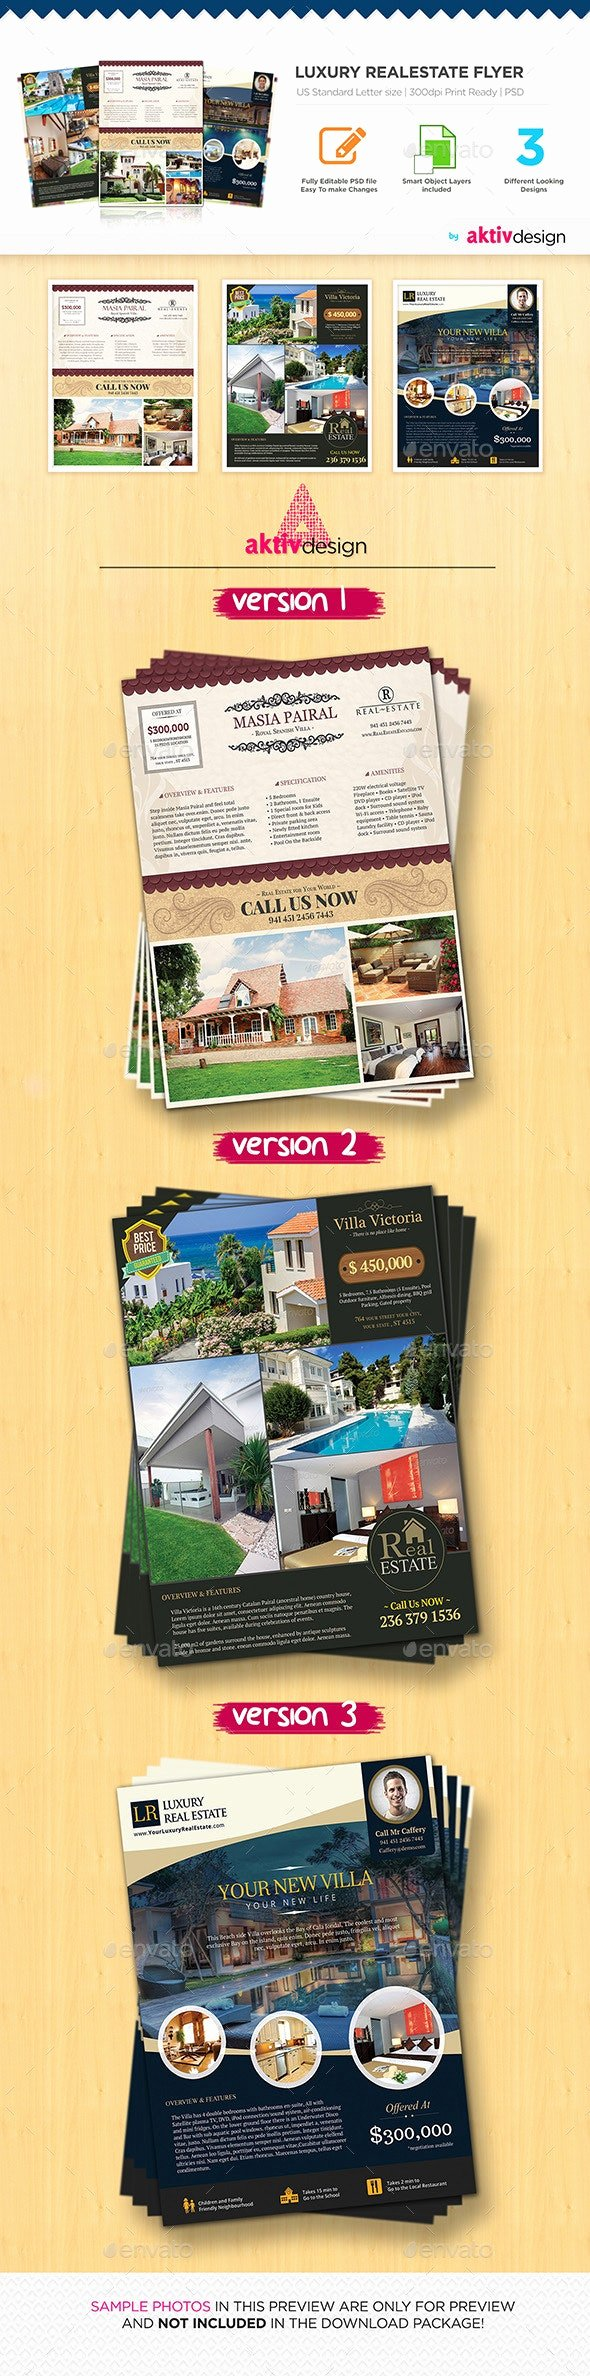 Luxury Real Estate Flyers Best Of Luxury Real Estate Flyers by Rajitha Hapuarachchi